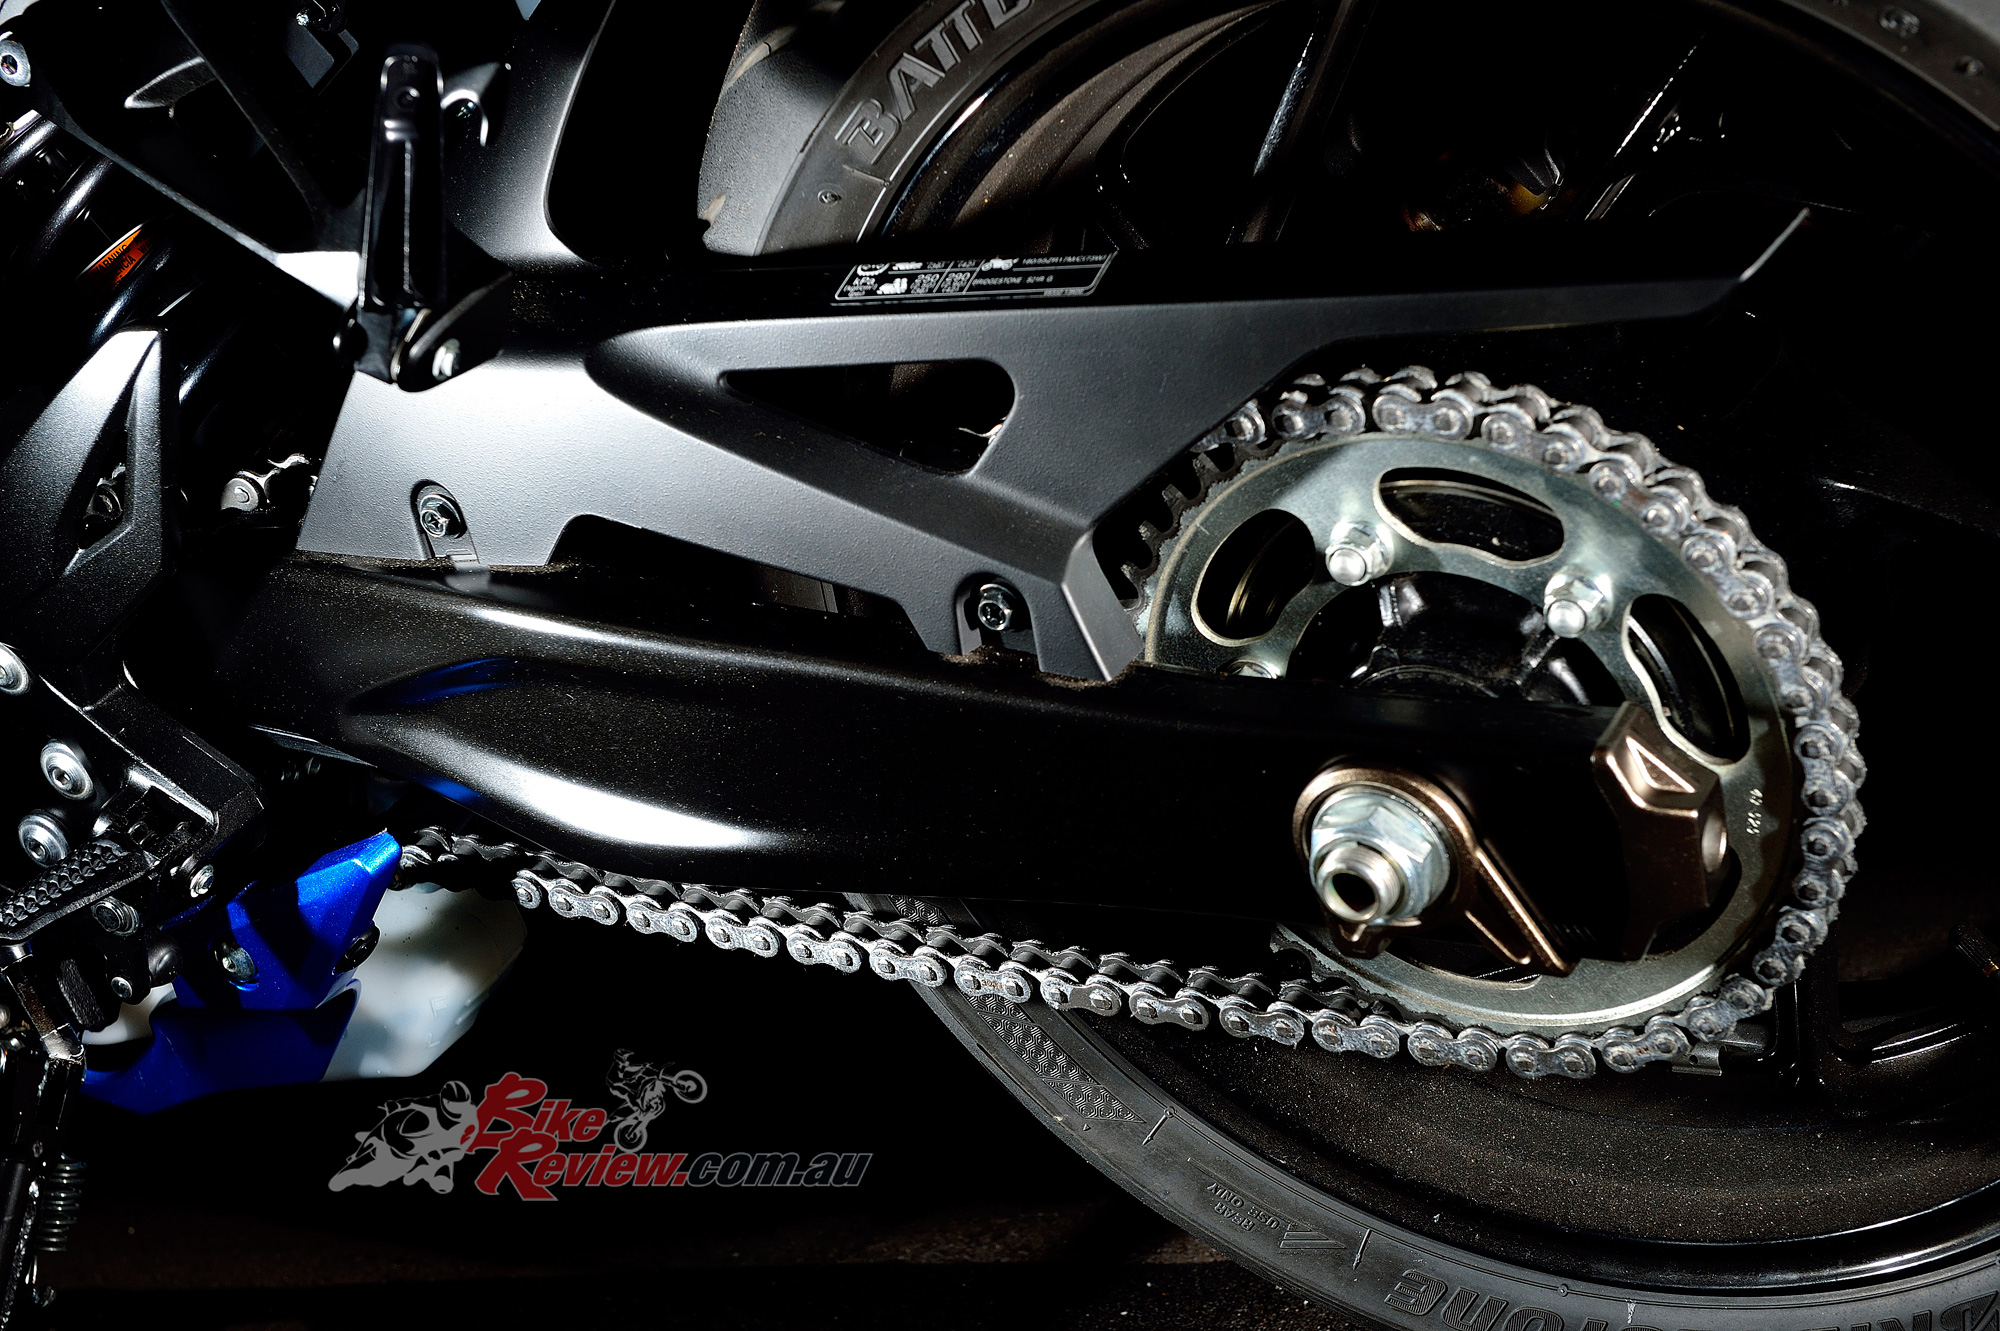 Sexier swingarm and wheels!